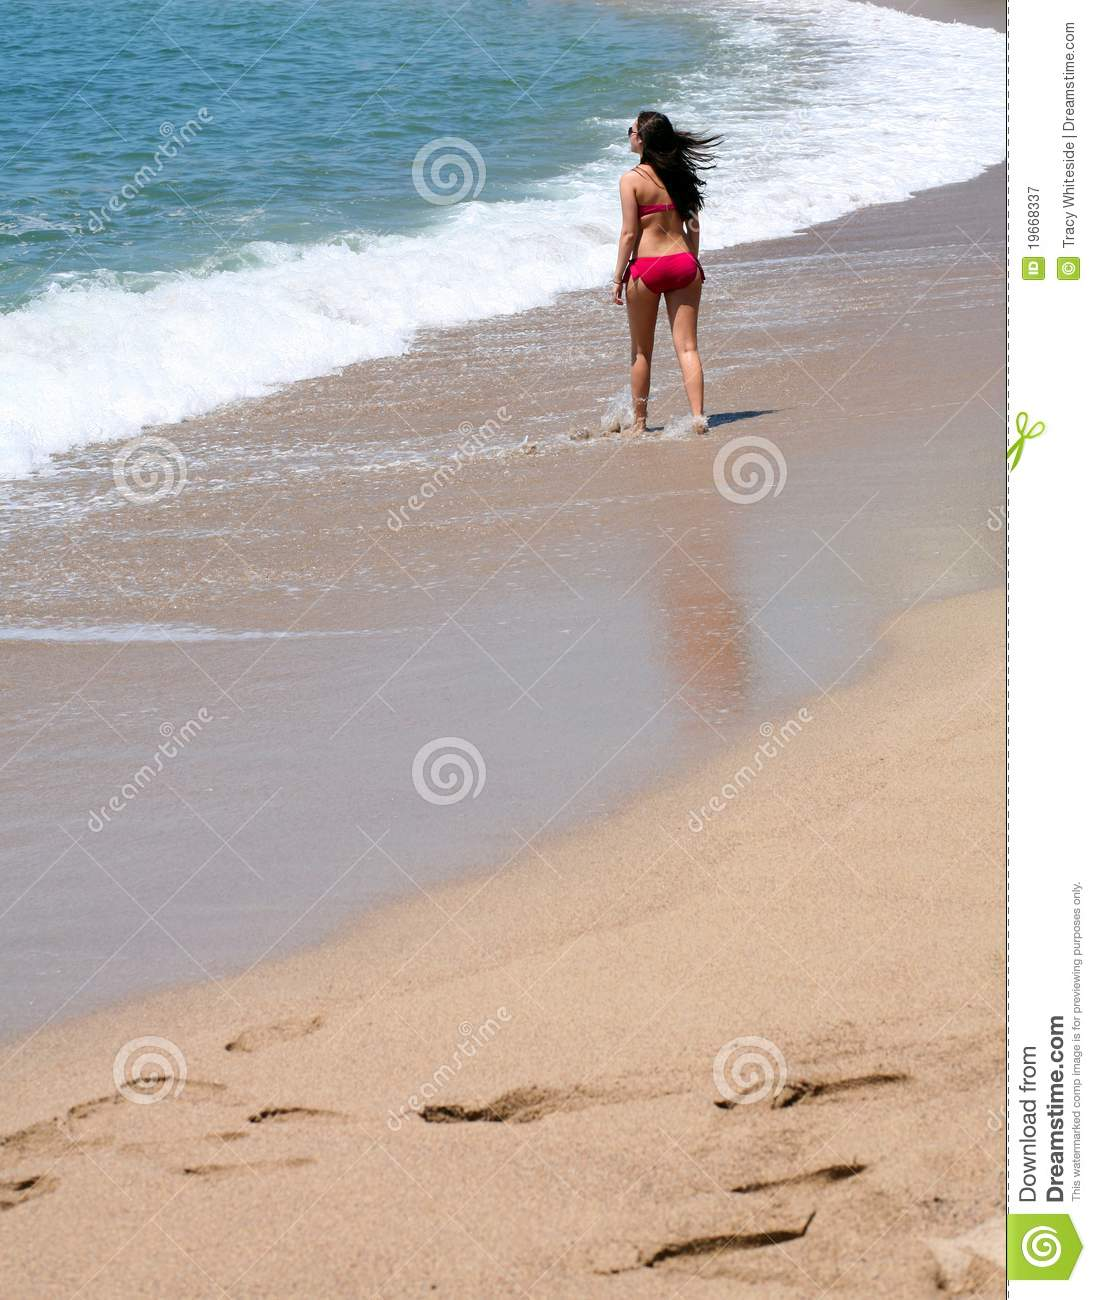 Woman With Beautiful Body In Bikini At Beach Stock Image: Back View Of Girl On Beach Stock Image. Image Of Adult